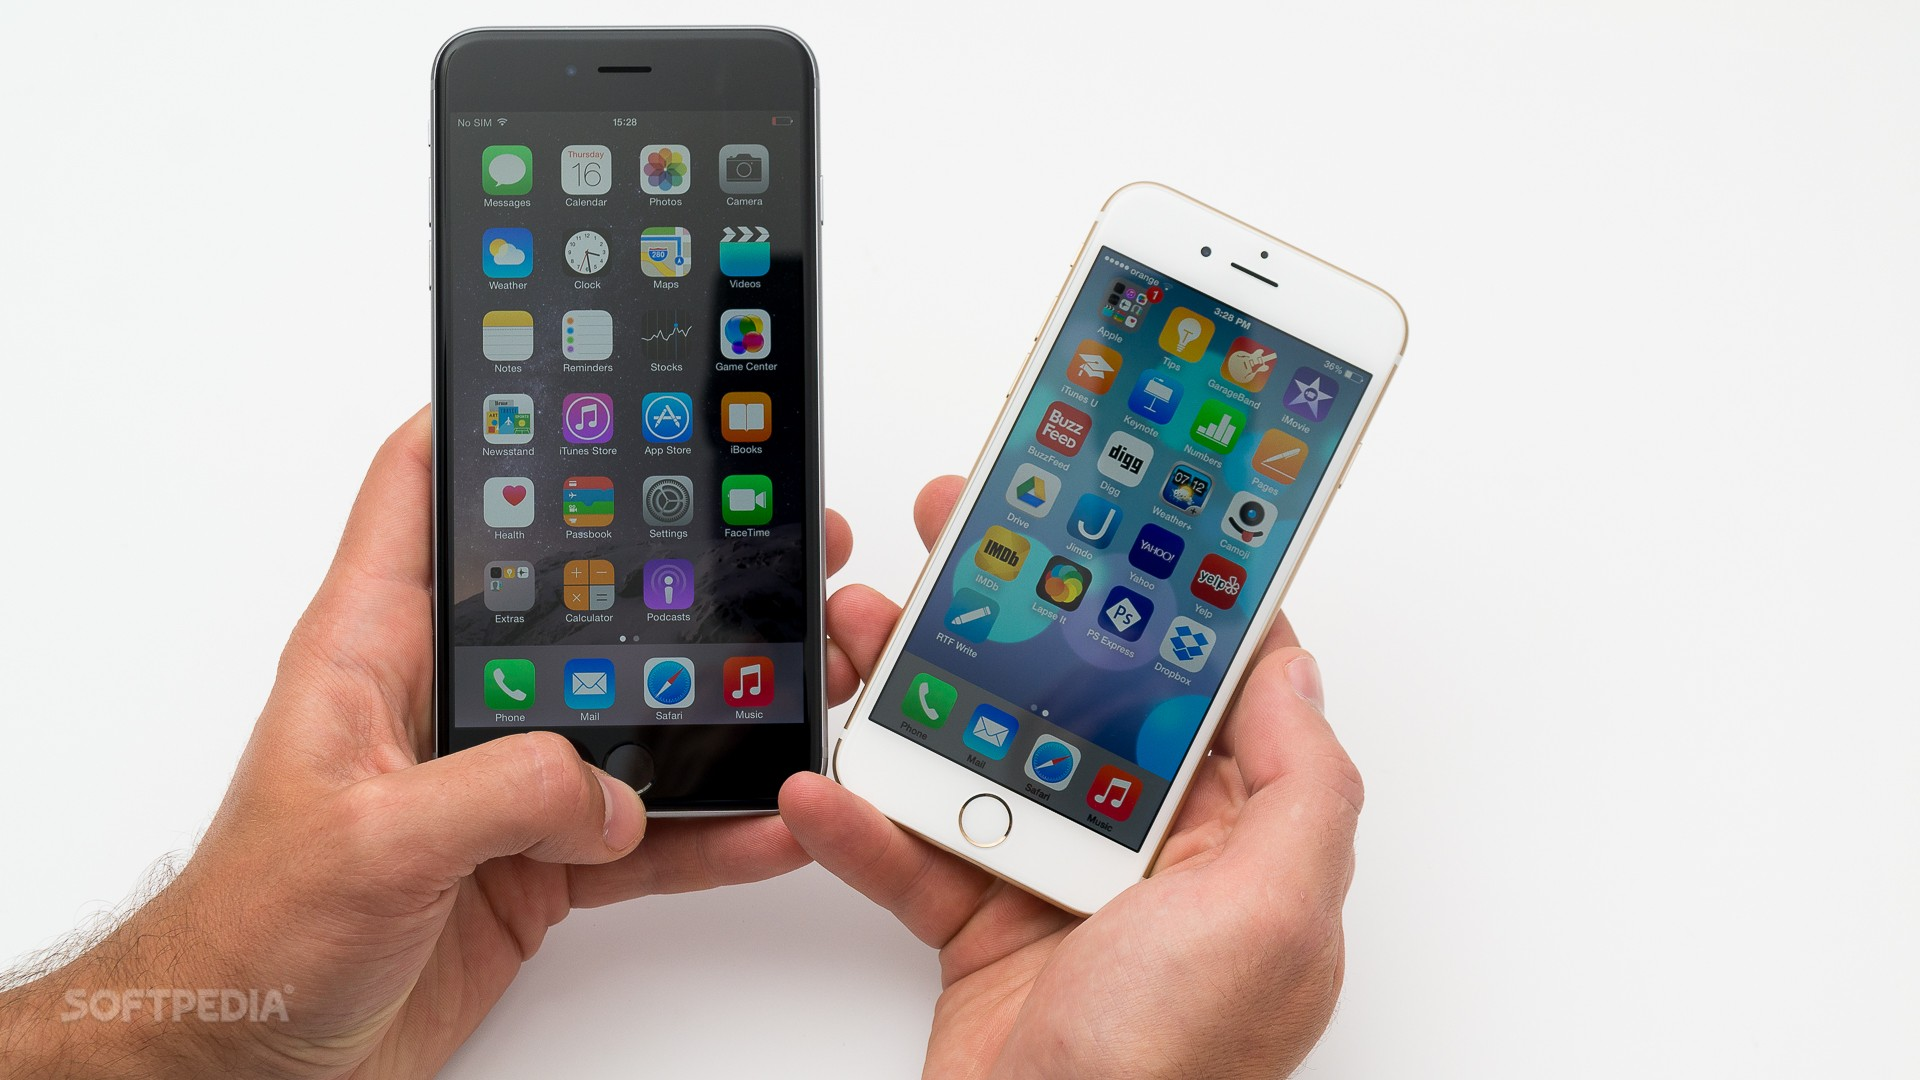 Great IPhone 6 Plus And IPhone 6, Both Without A LED Notification Light ... Ideas